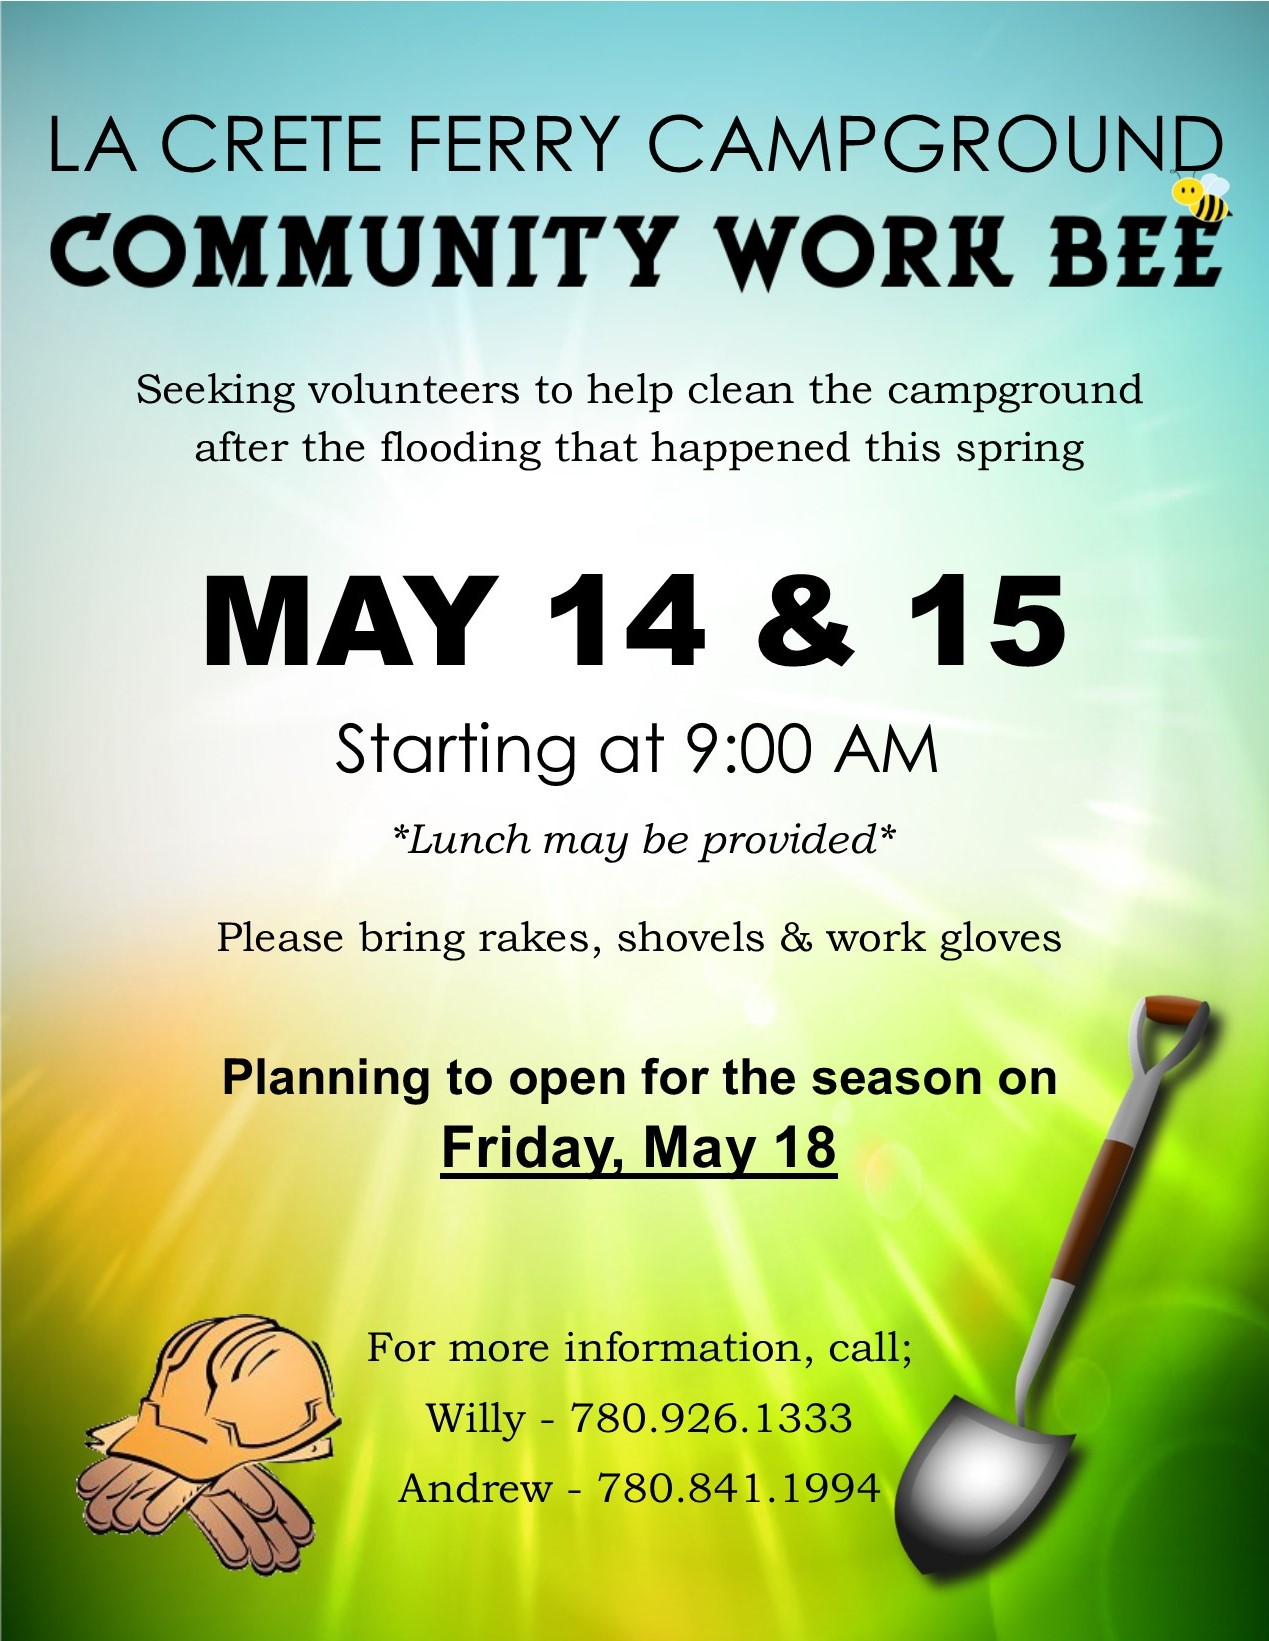 La Crete Ferry Campground Community Work Bee 2018